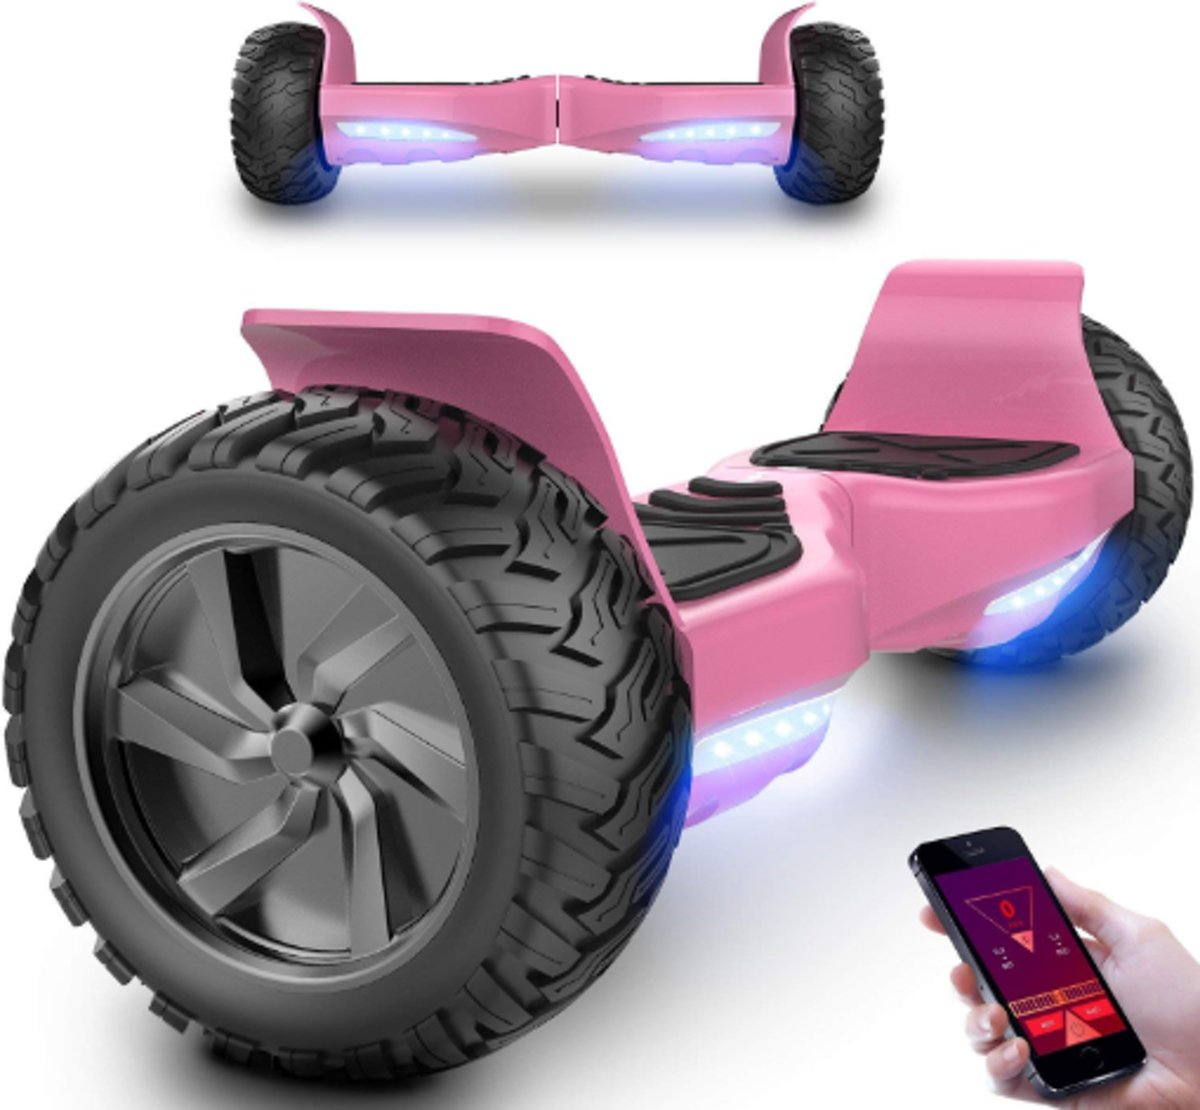 HOVERBOARD HUMMER Roze ALLE TERREINEN 8.5 INCHES Off Road App Functie met V5 Bluetooth speaker&TAOTAO 2018 SOFTWARE